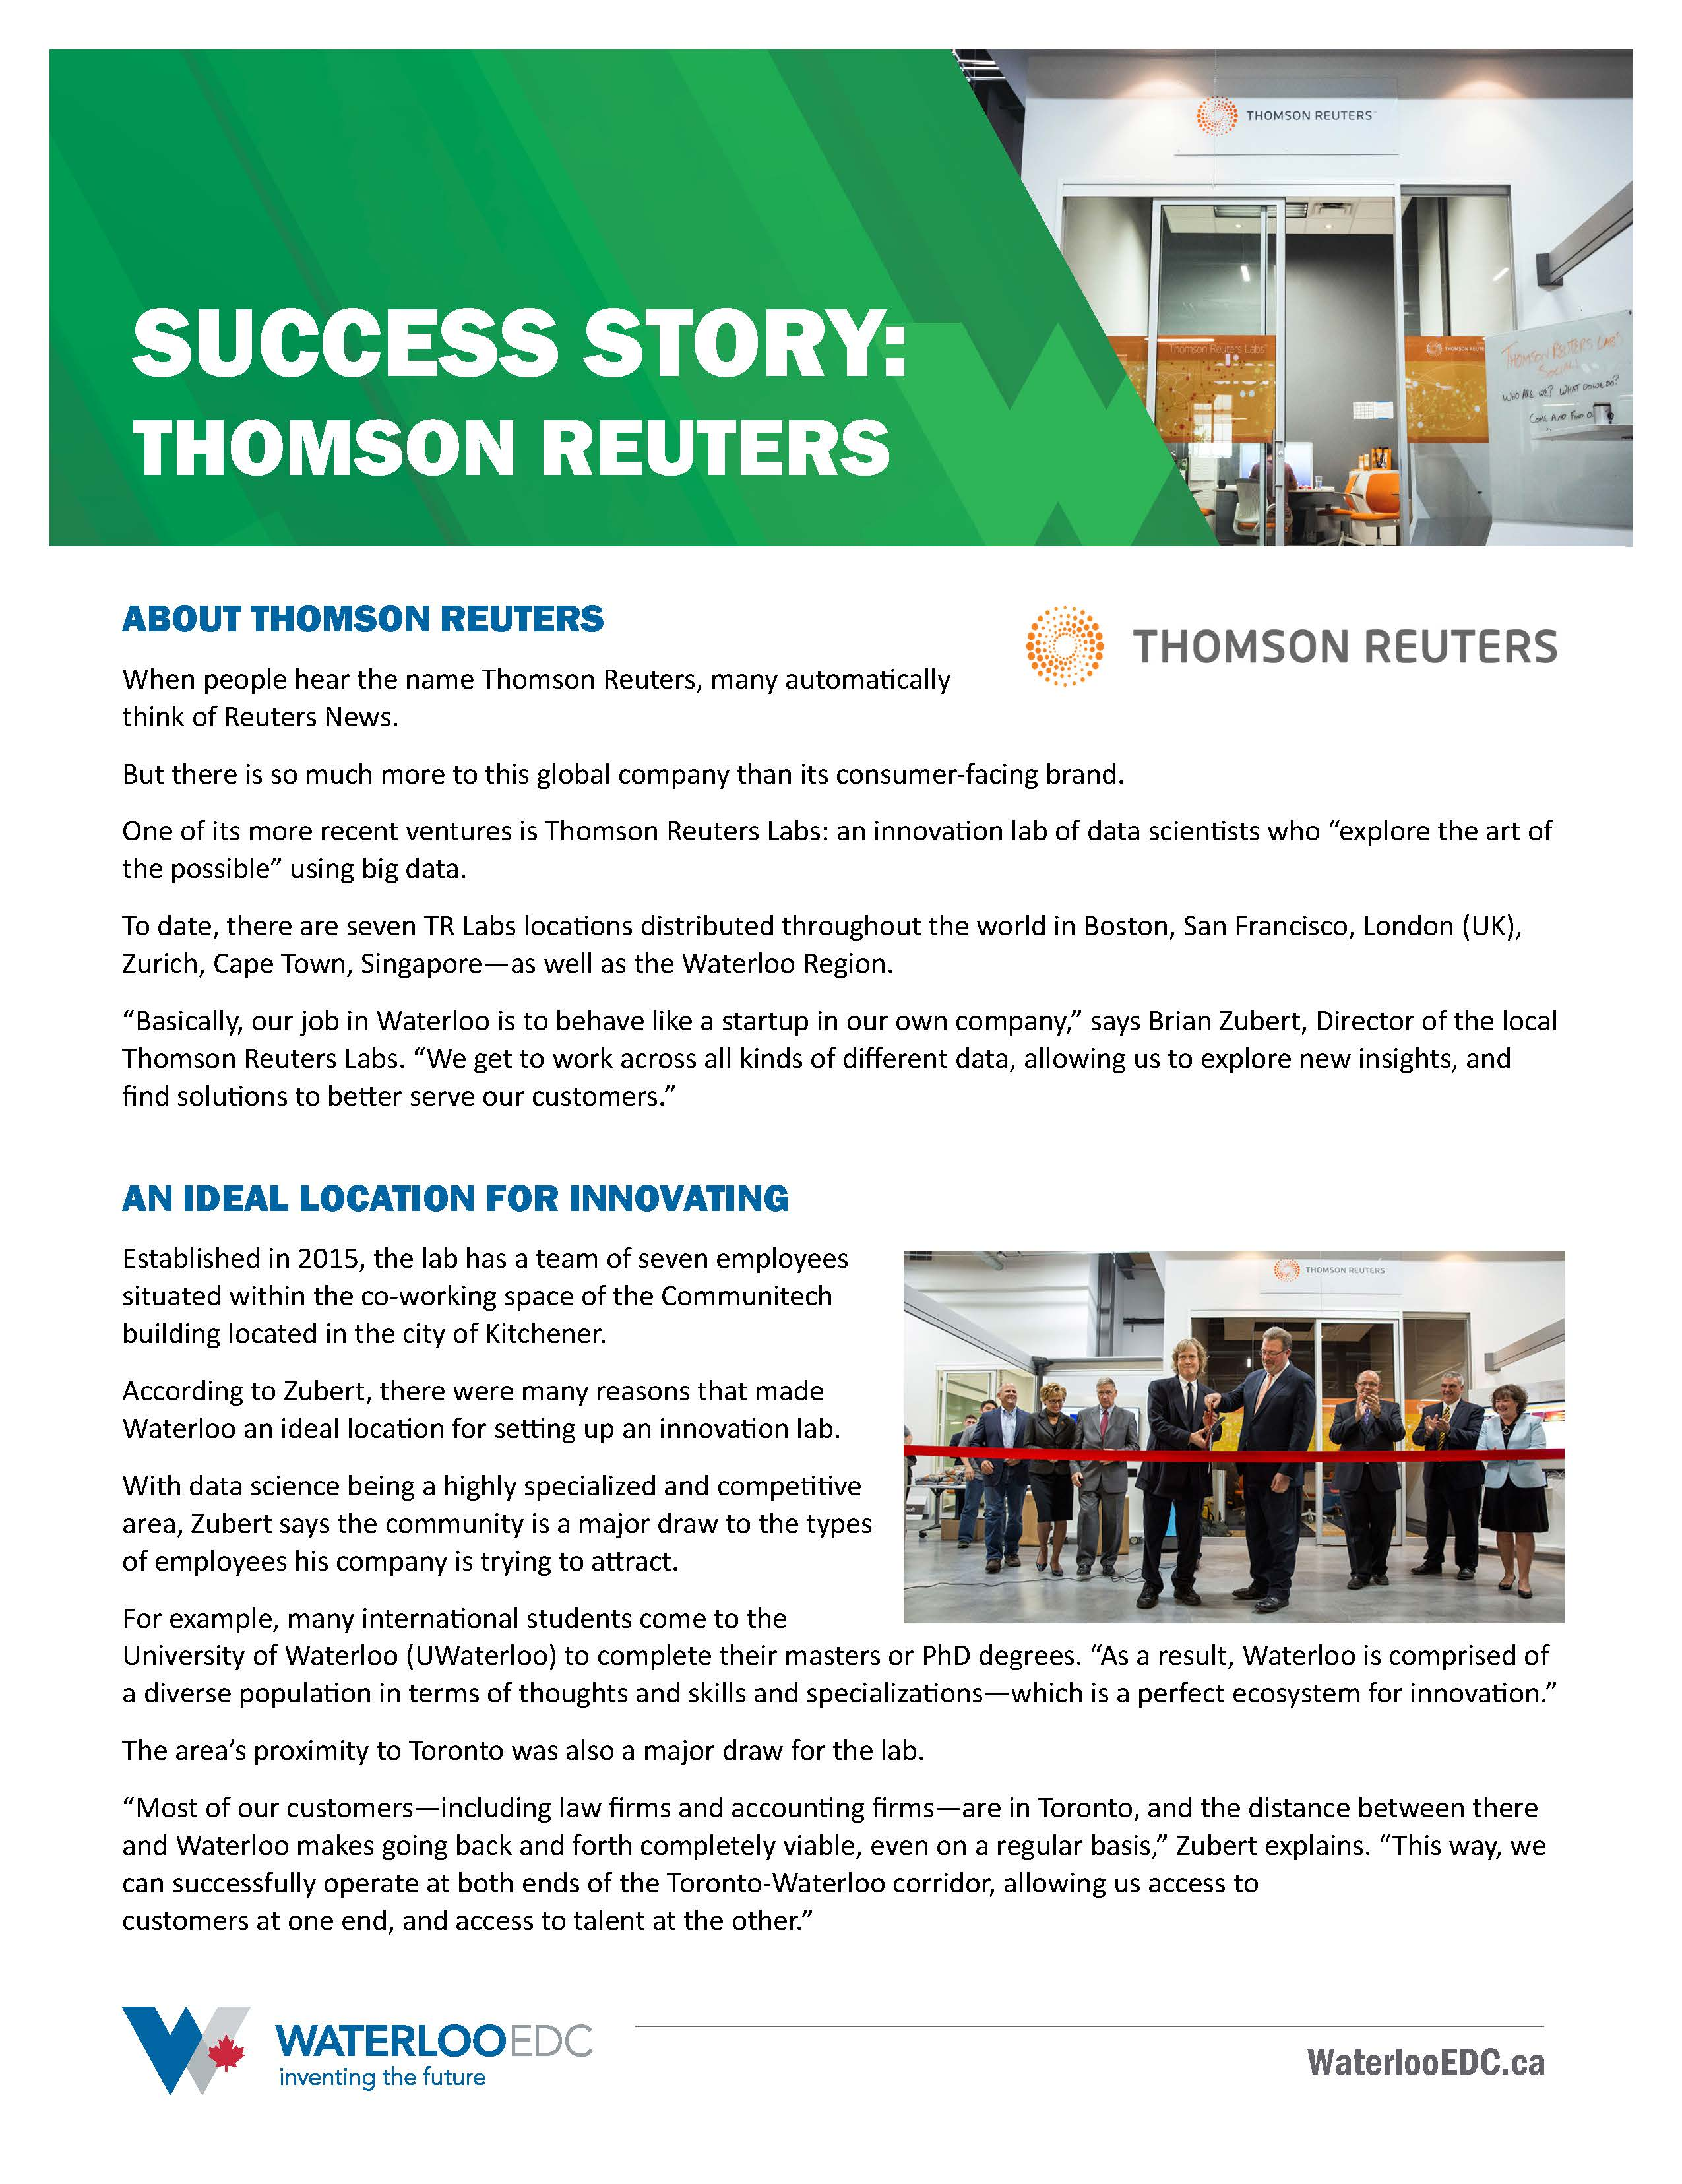 Success Story: Thomson Reuters